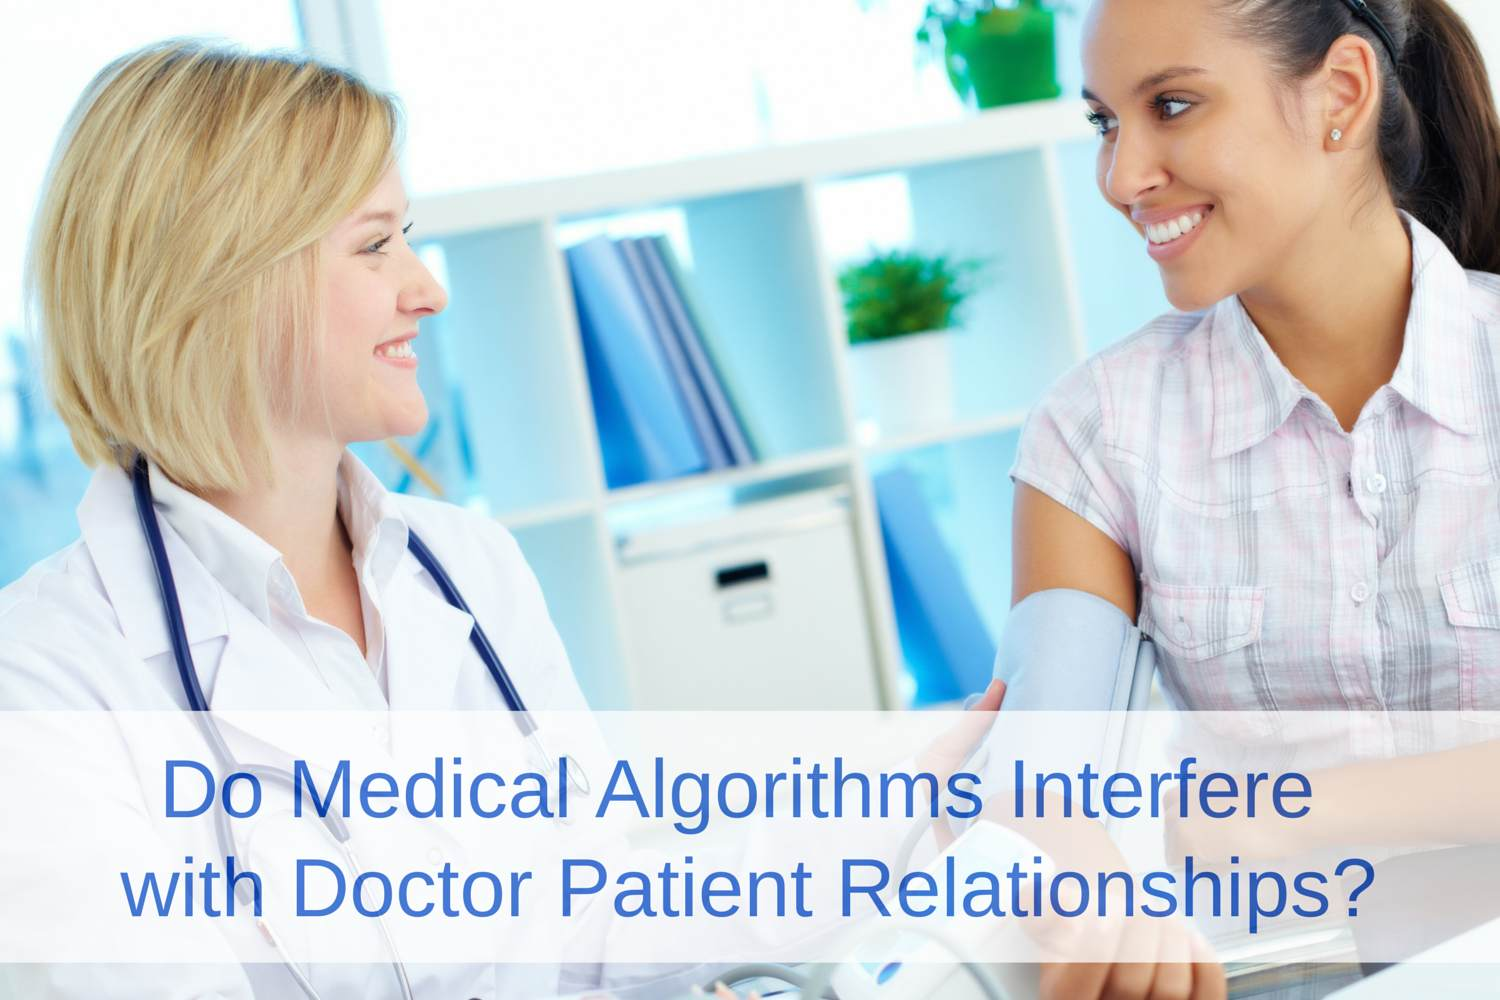 do computers interfere w/ doctor patient relationships?, Human Body